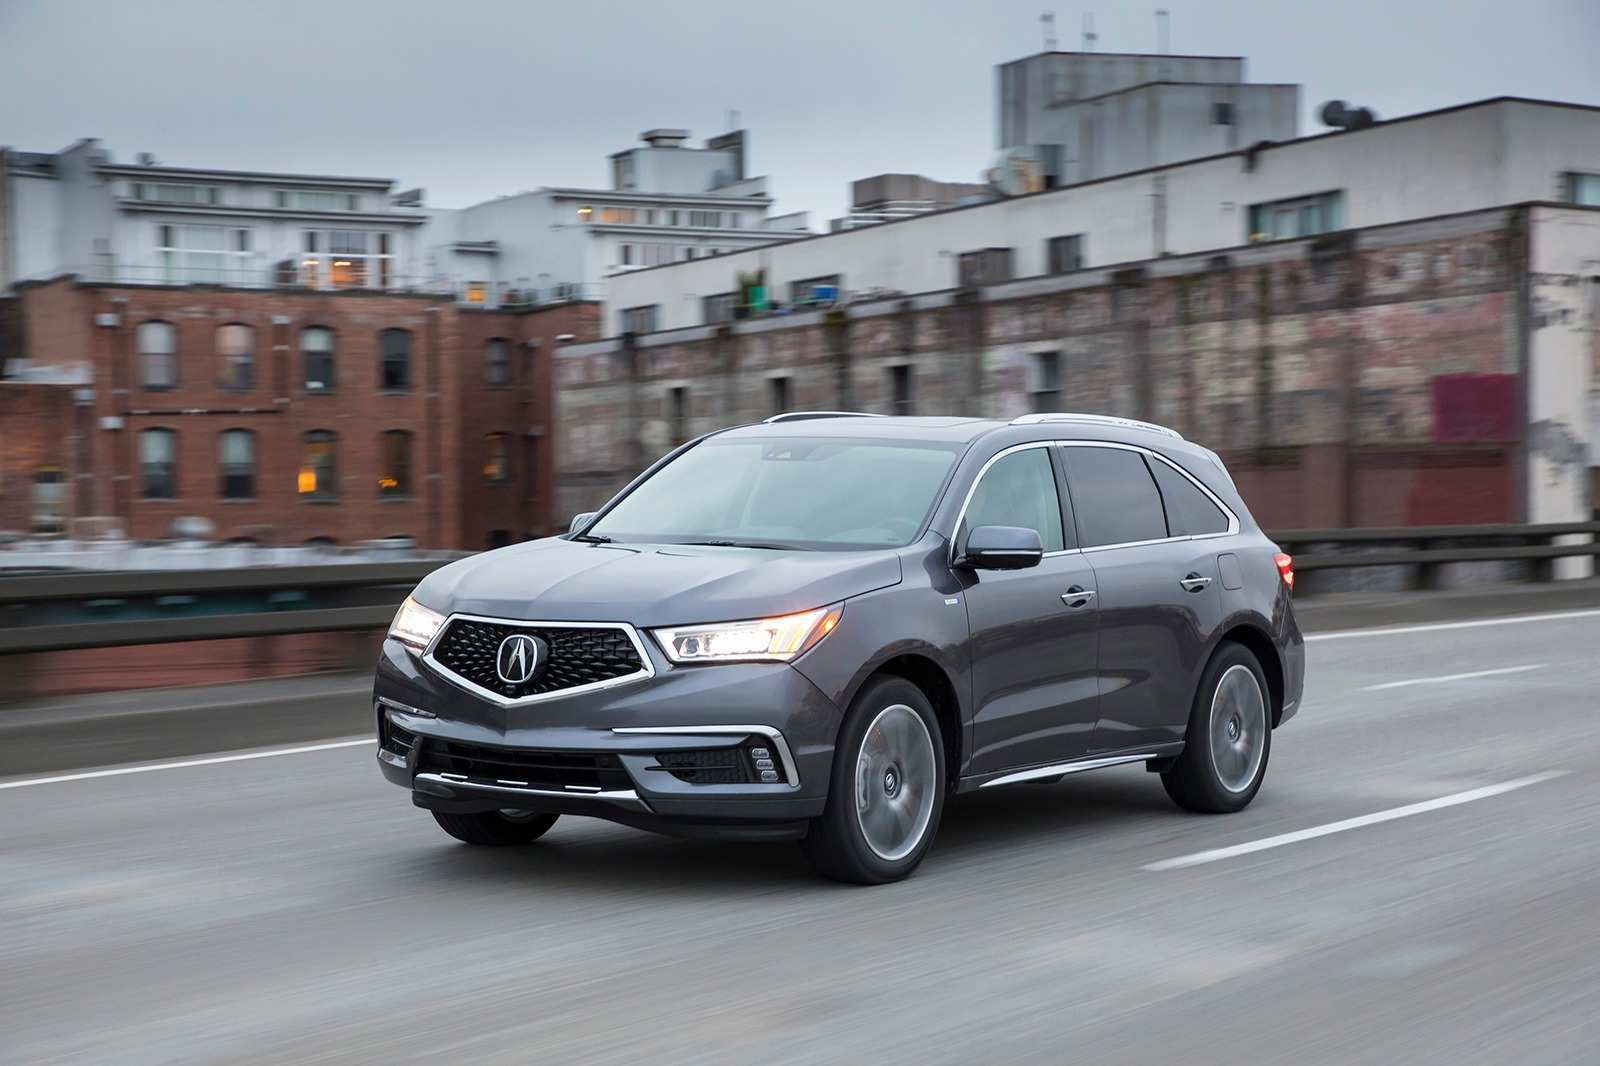 43 Best Review The Acura Hybrid Suv 2019 New Engine History by The Acura Hybrid Suv 2019 New Engine